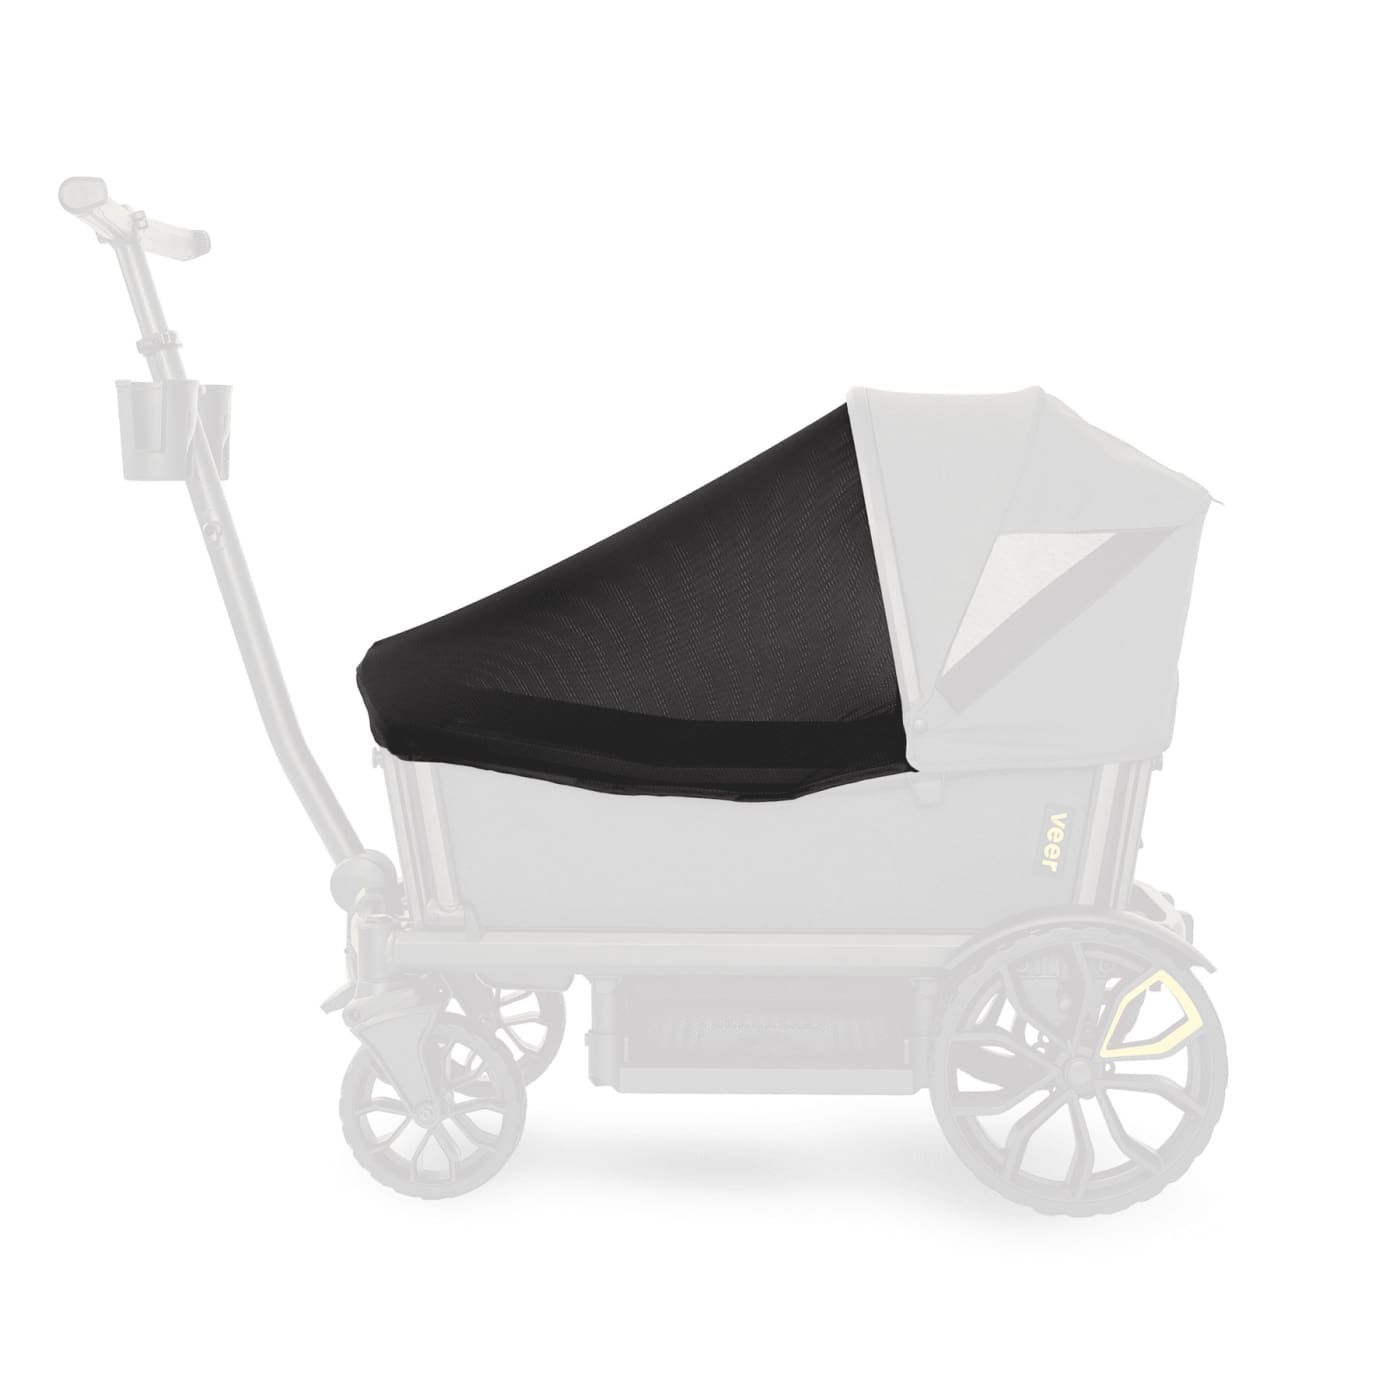 Veer Bug Shield - PRAMS & STROLLERS - SUN COVERS/WEATHER SHIELDS